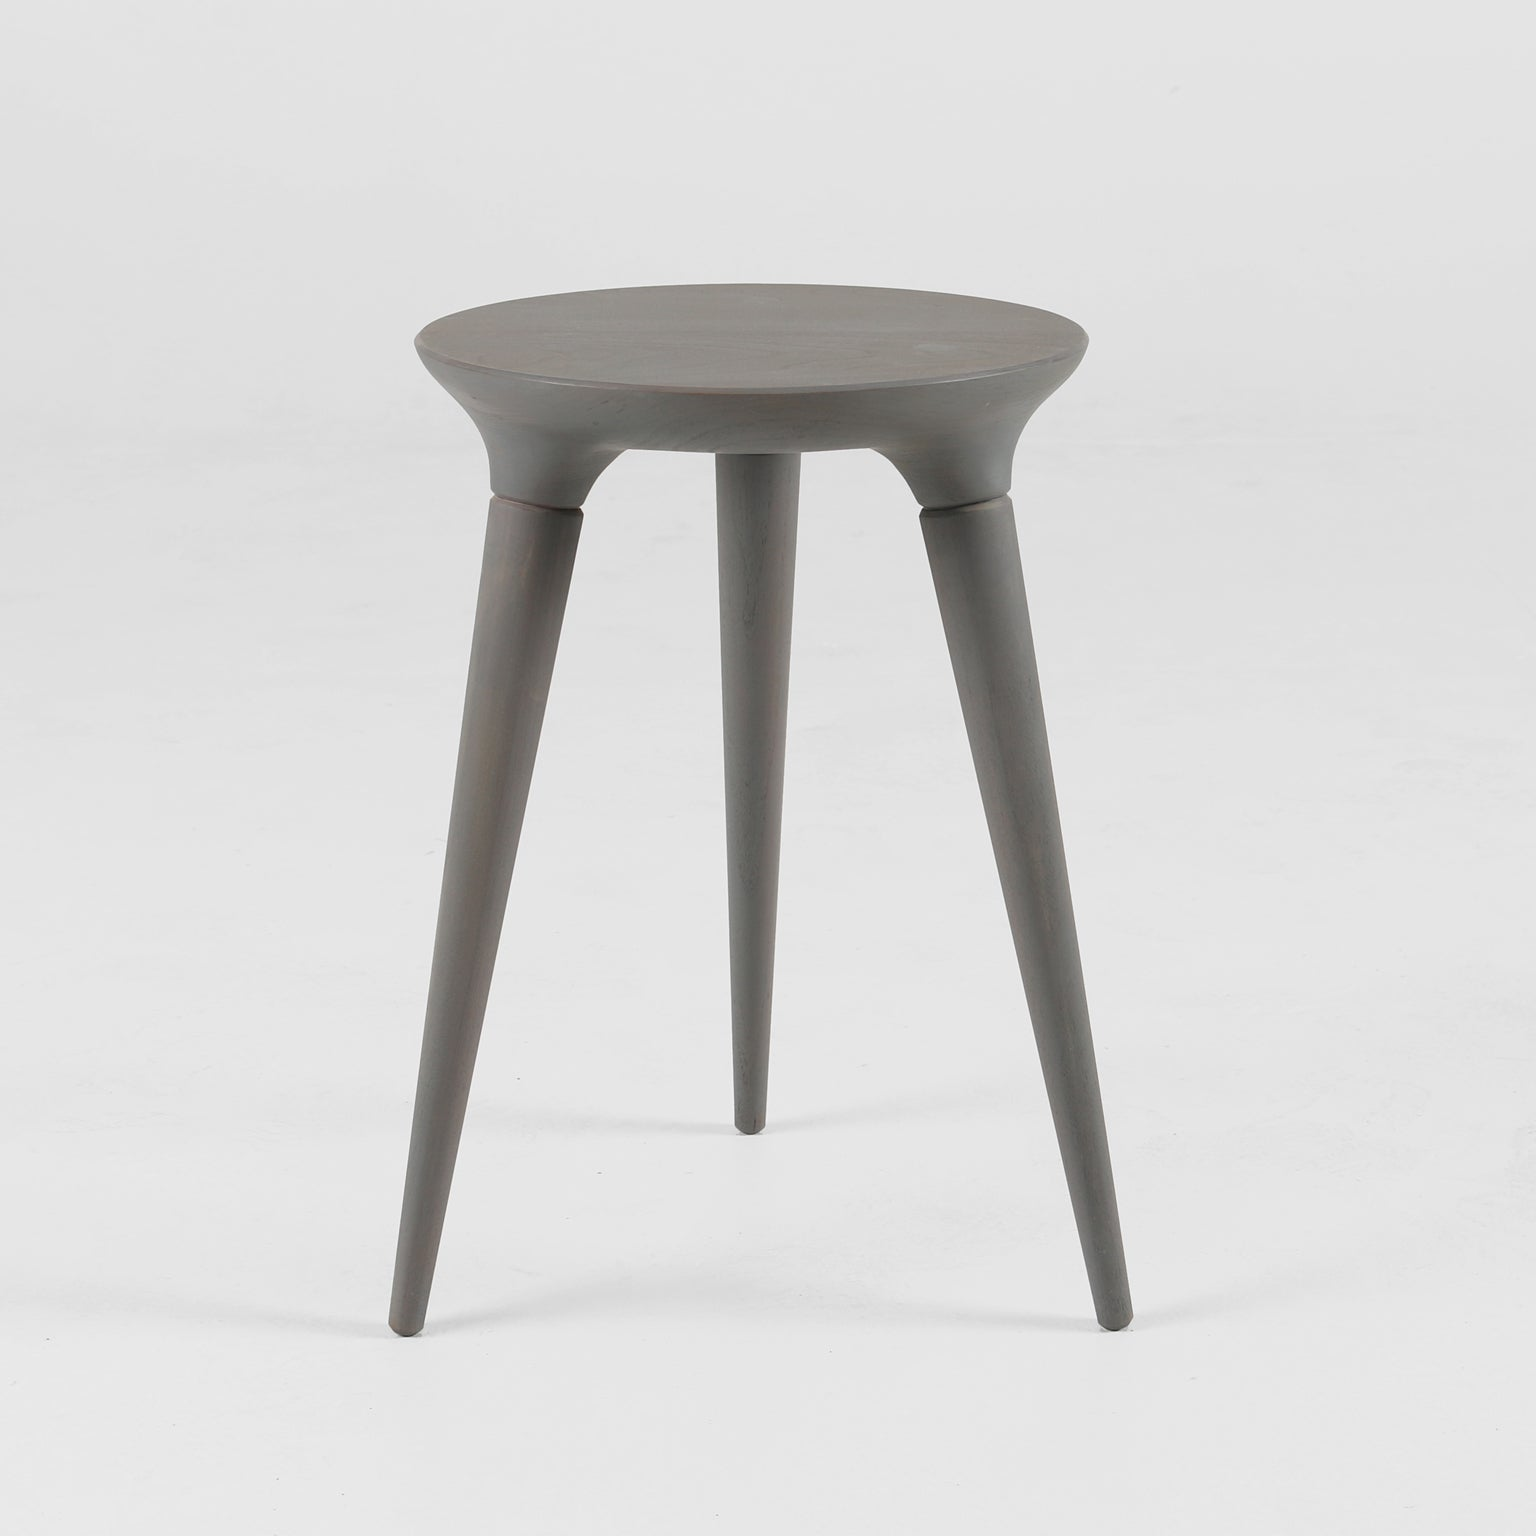 Sample Sale: Coventry Stool in Weathered Grey Stain